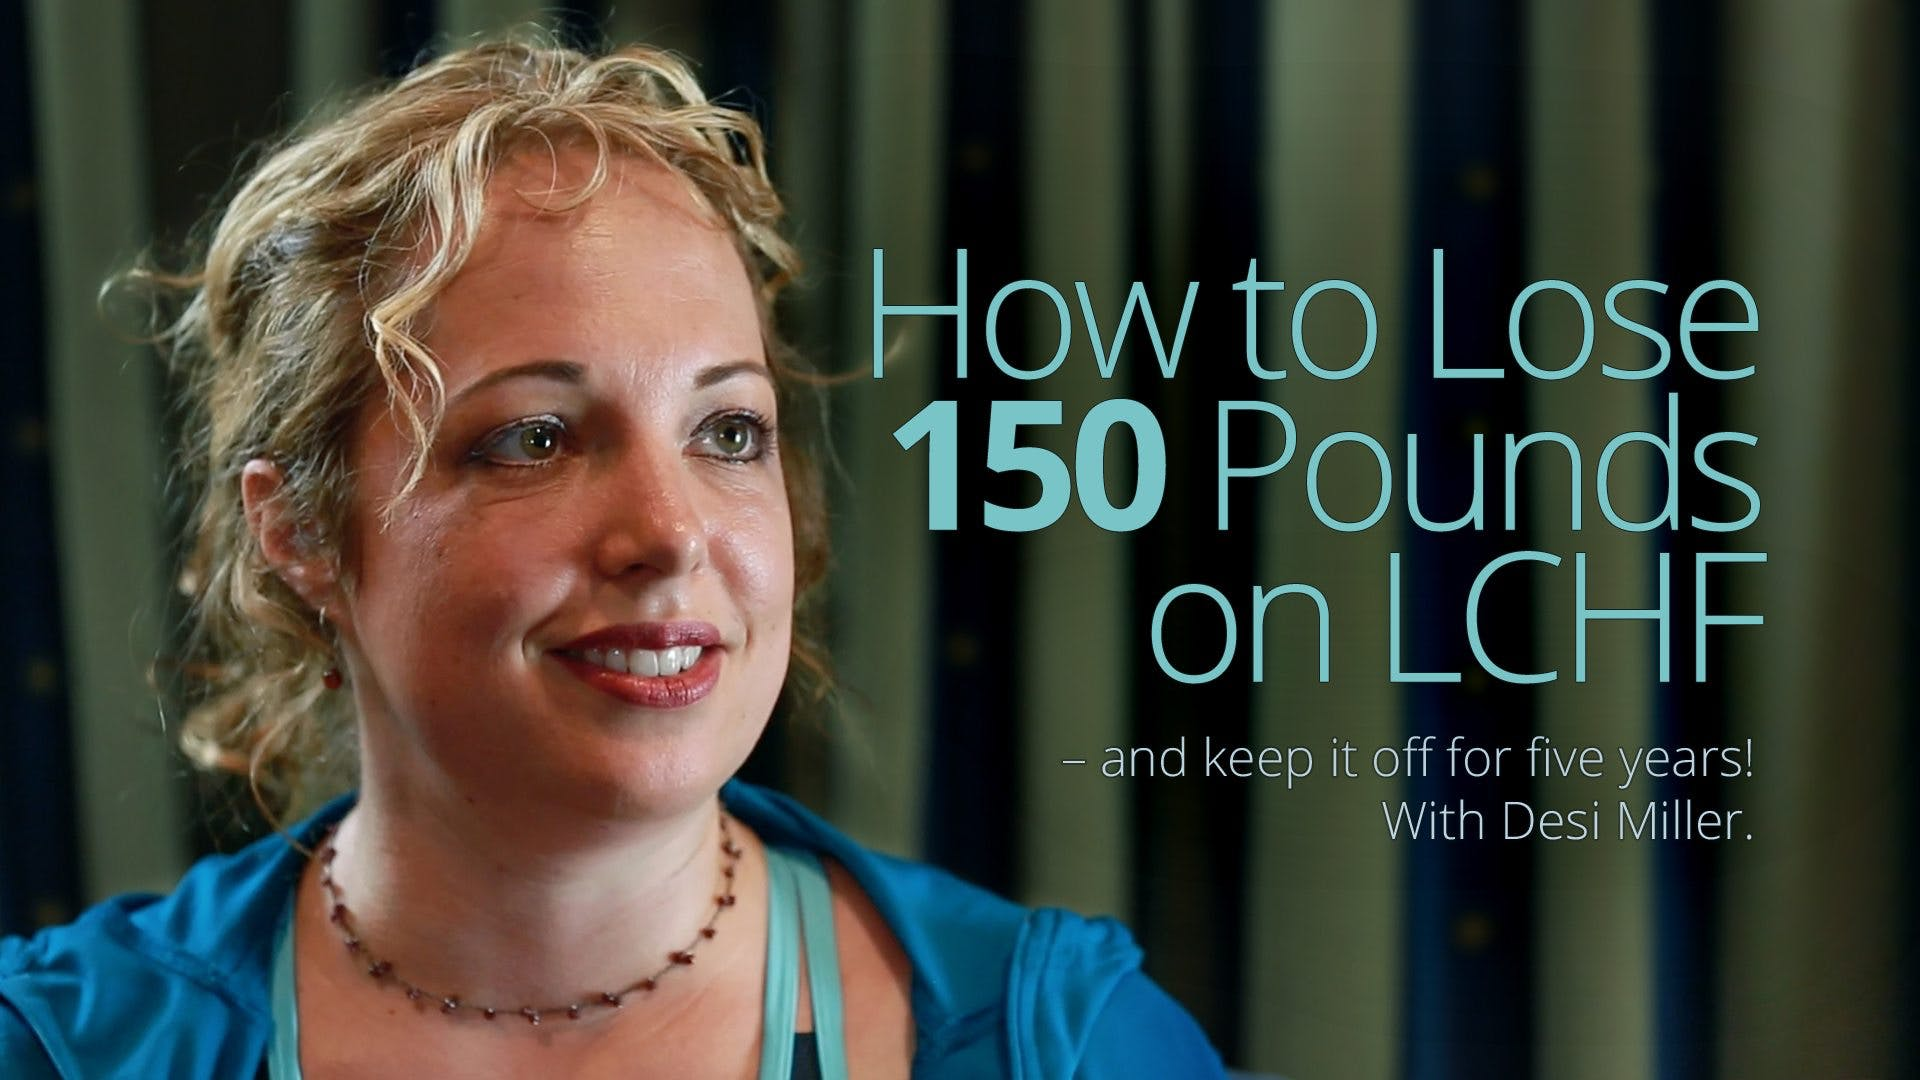 How to lose 150 pounds on LCHF